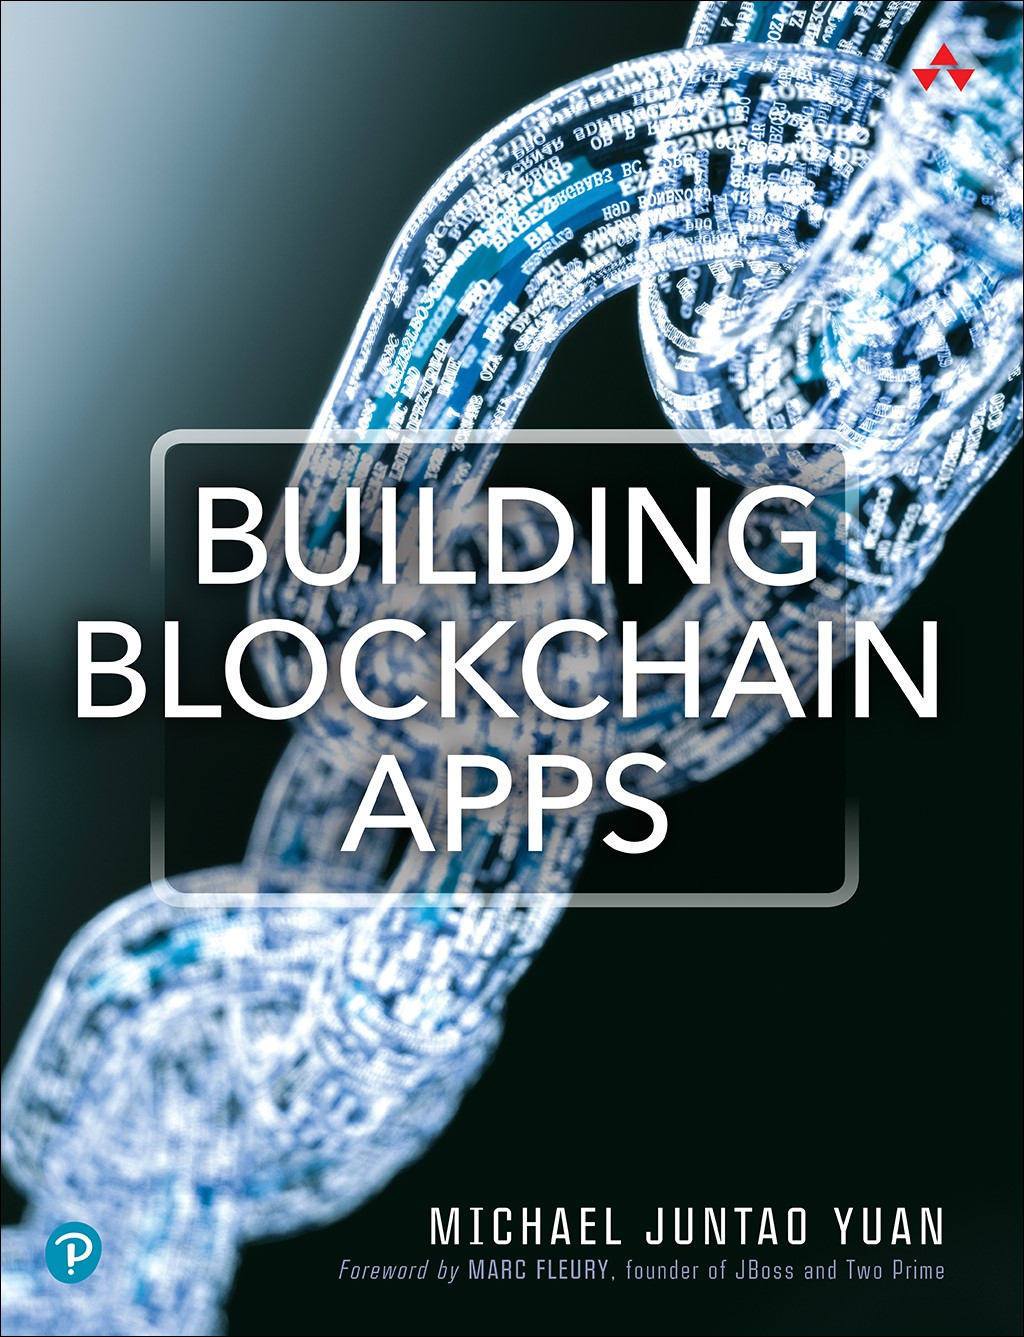 Building Blockchain Apps